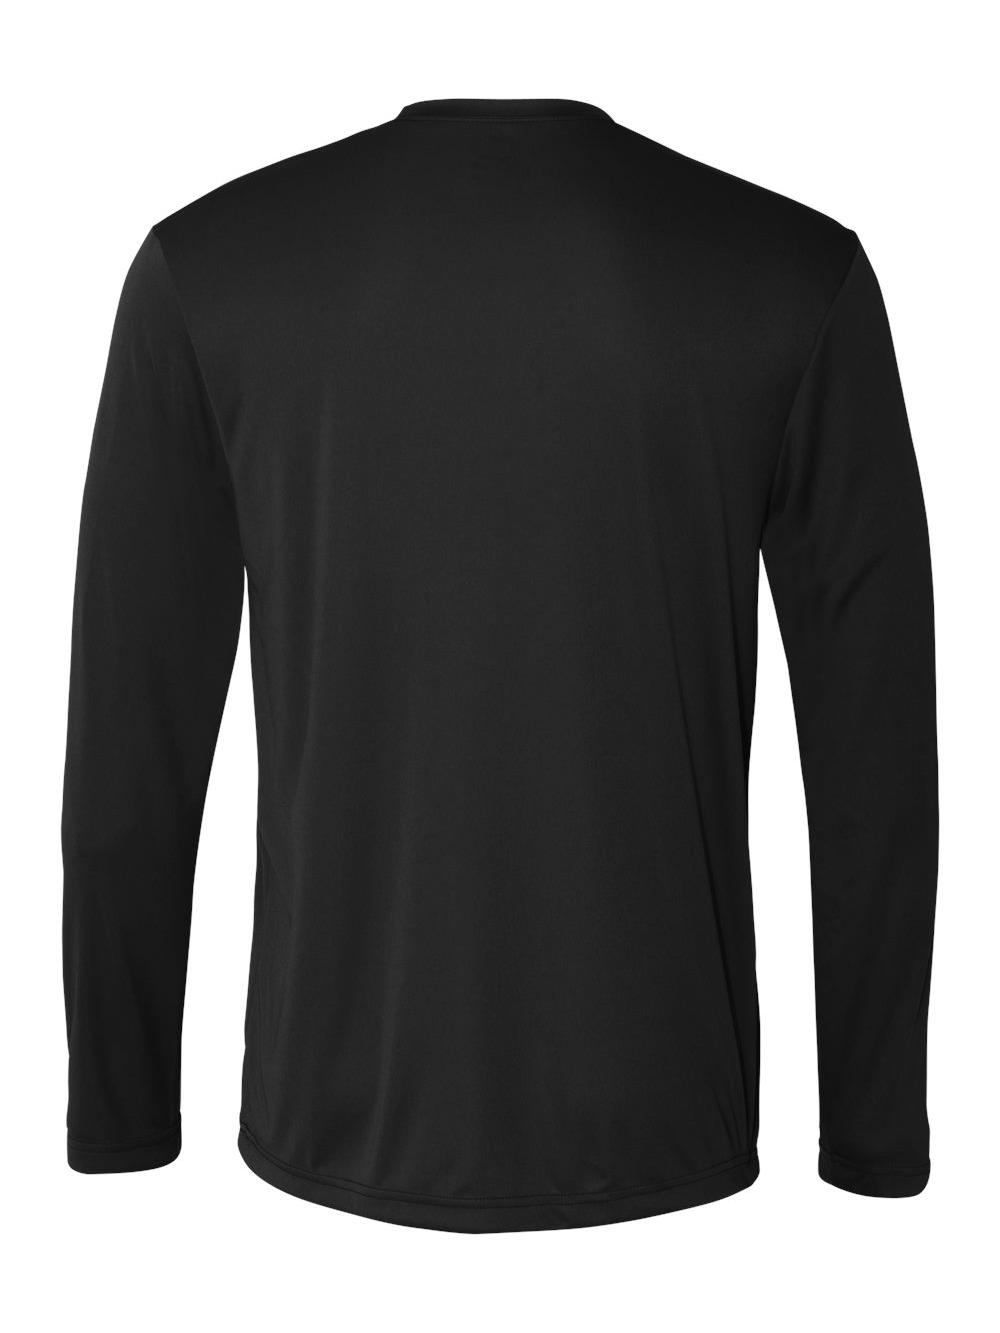 Hanes-Cool-Dri-Long-Sleeve-Performance-T-Shirt-482L thumbnail 4